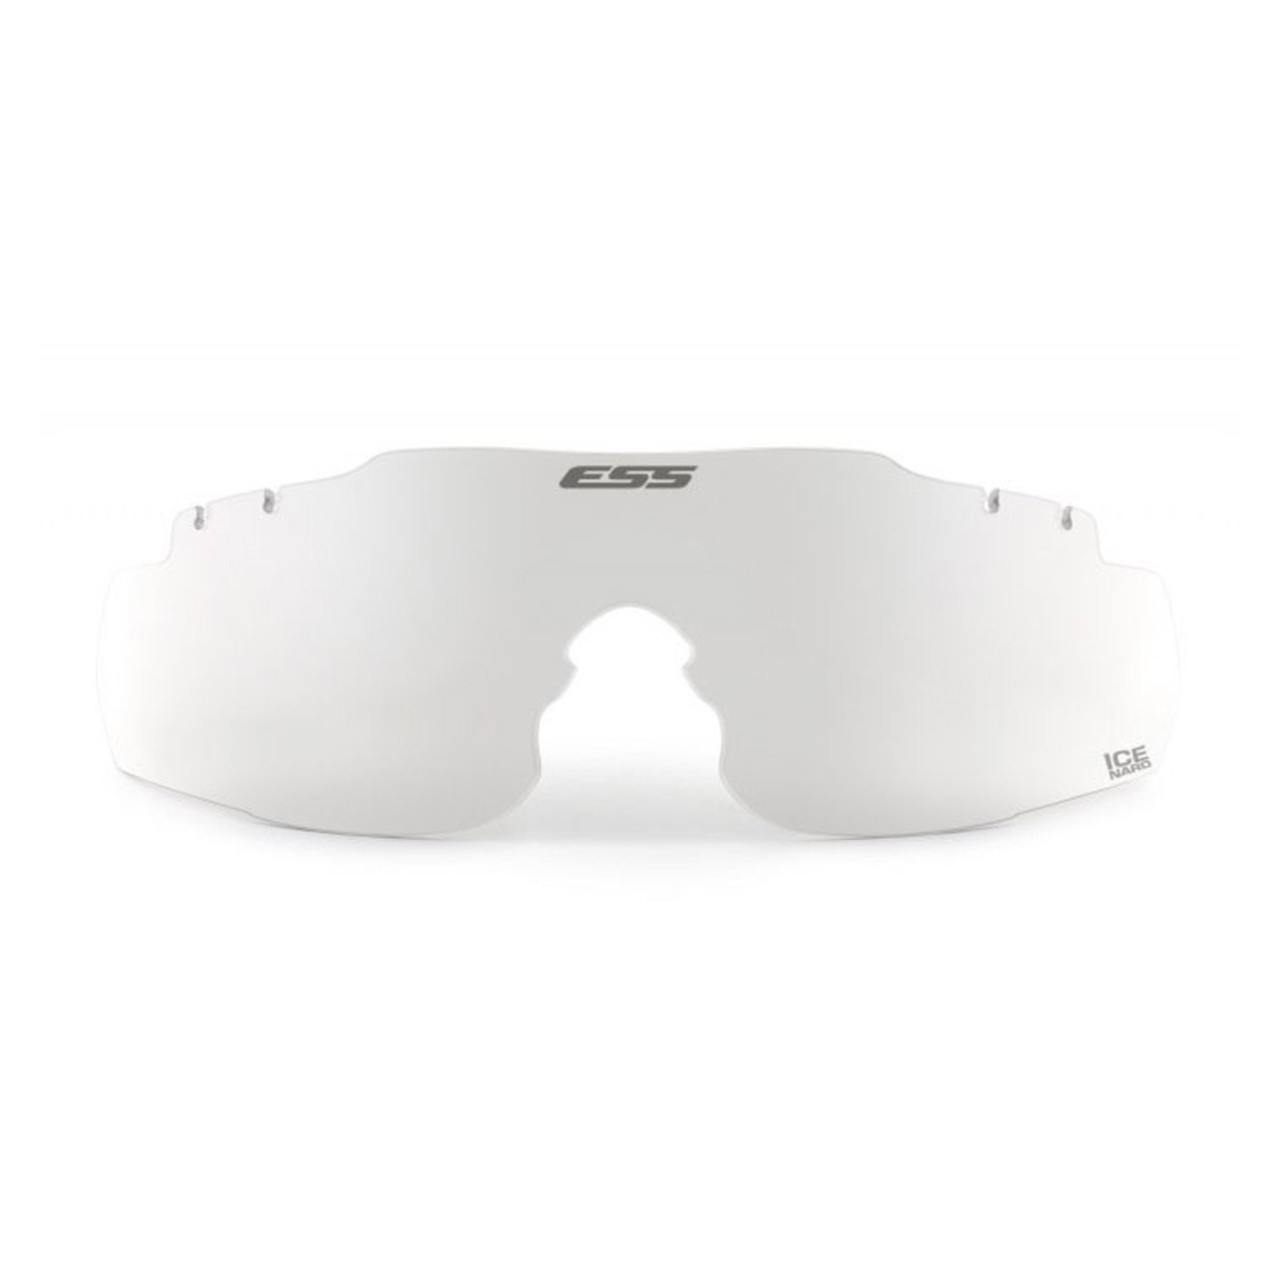 53066 ESS ICE 2.4 REPLACEMENT LENS CLEAR